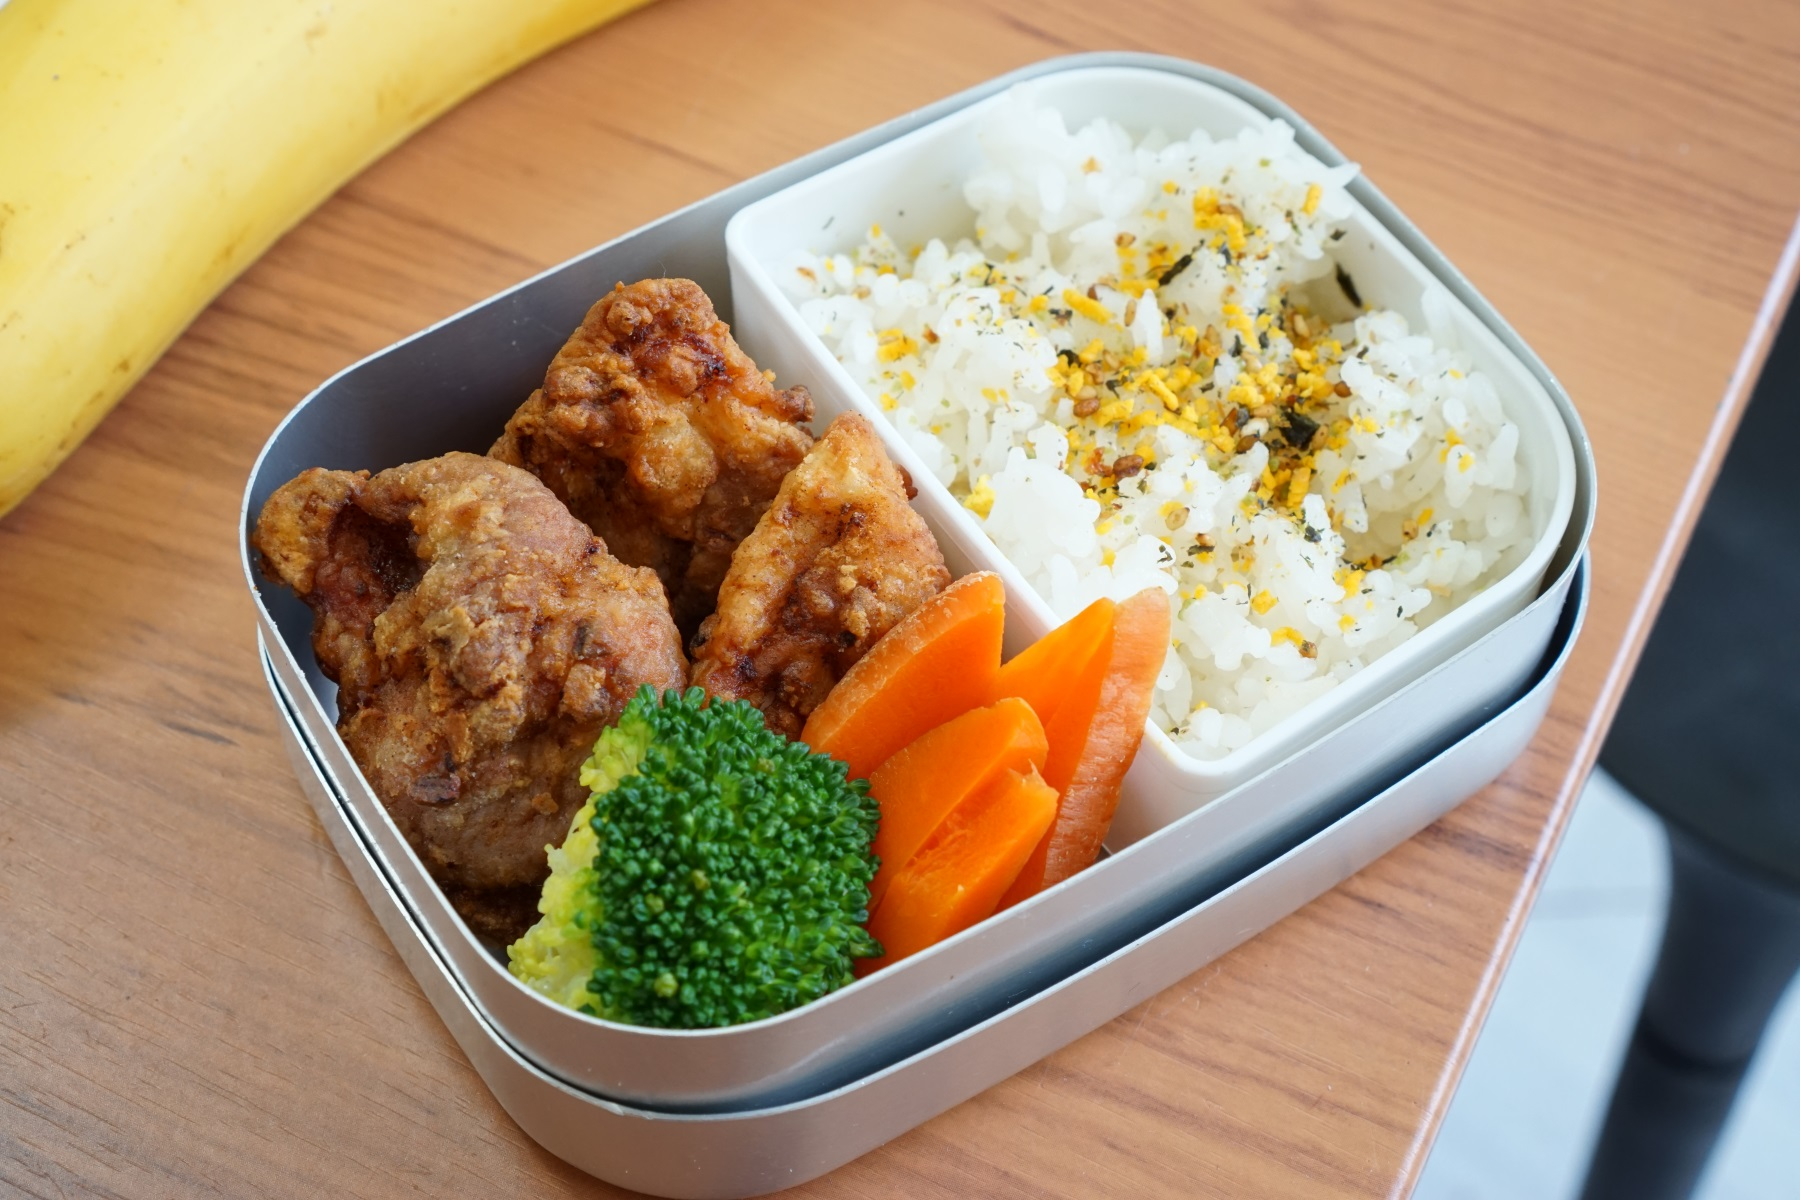 20th Wednesday  Karaage chicken and steamed vegetables.